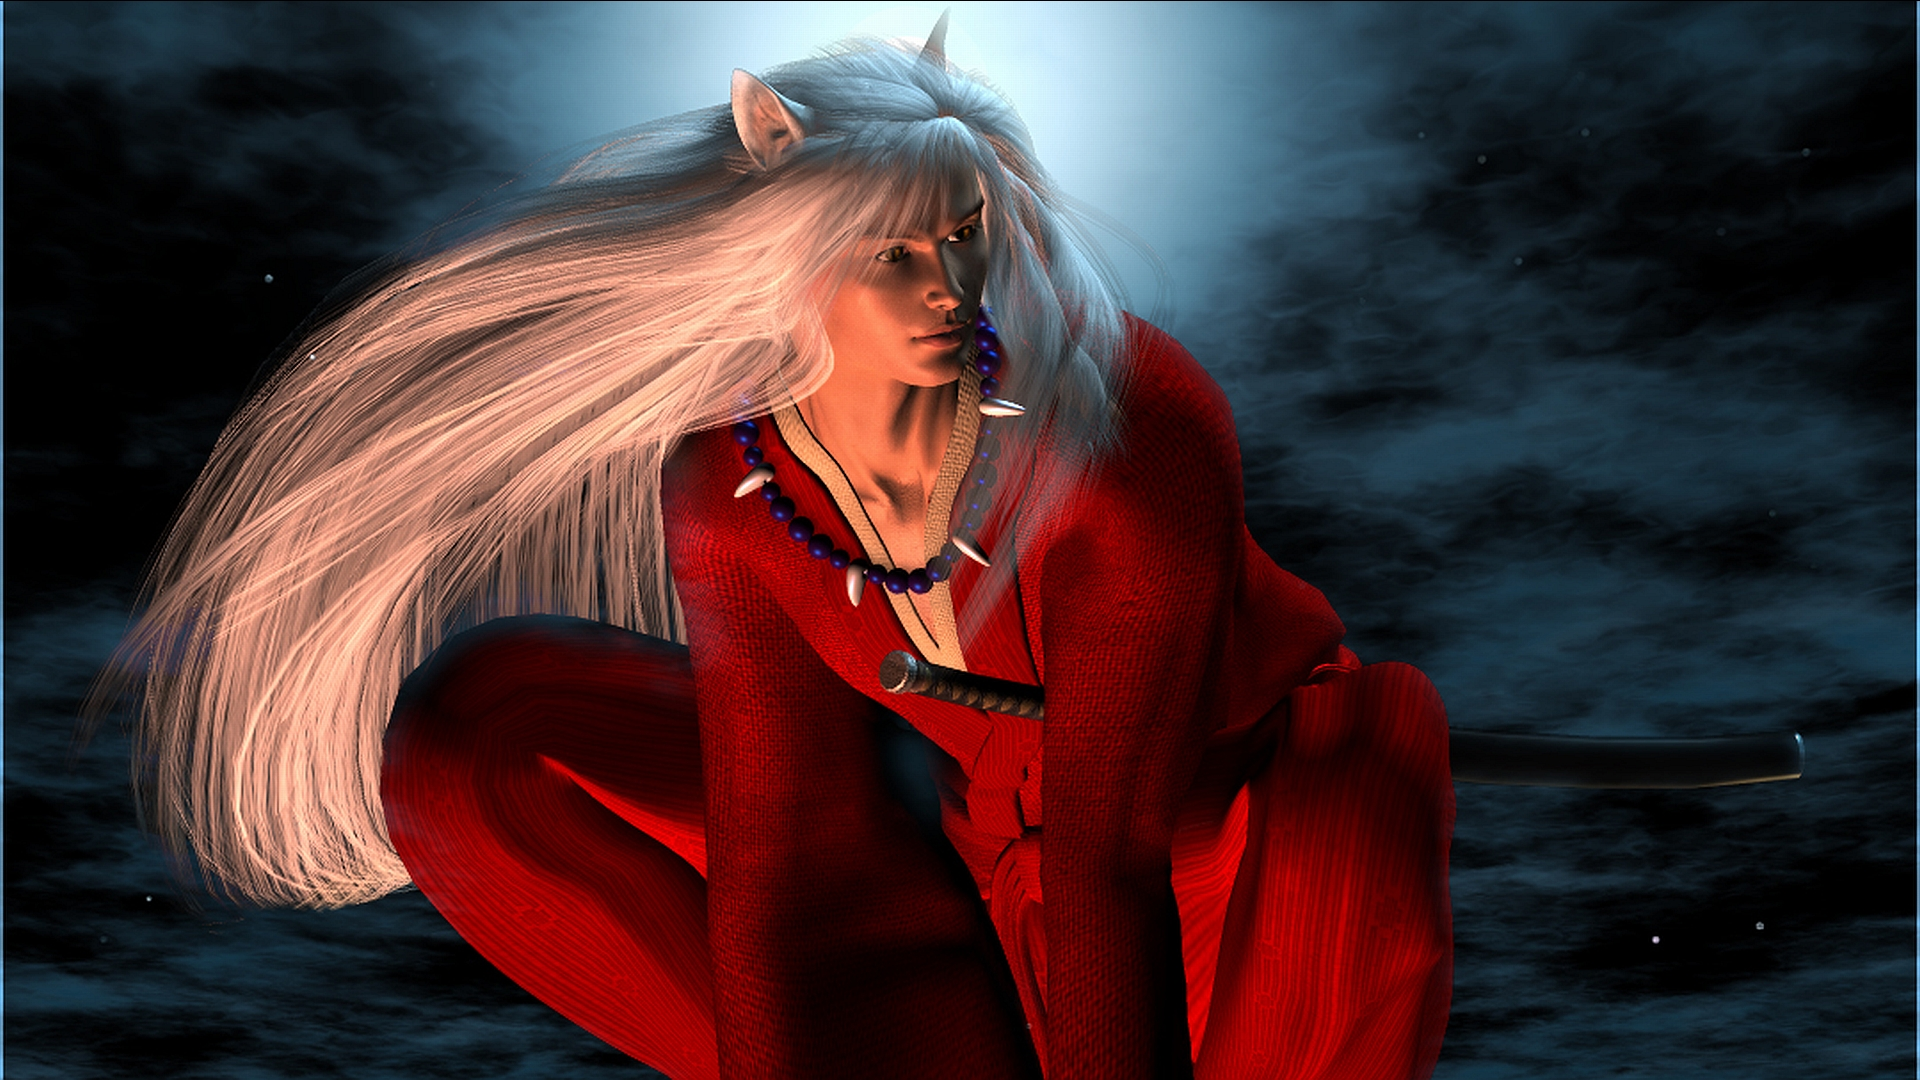 Wallpaper Para Smartphone 3d: InuYasha HD Wallpaper